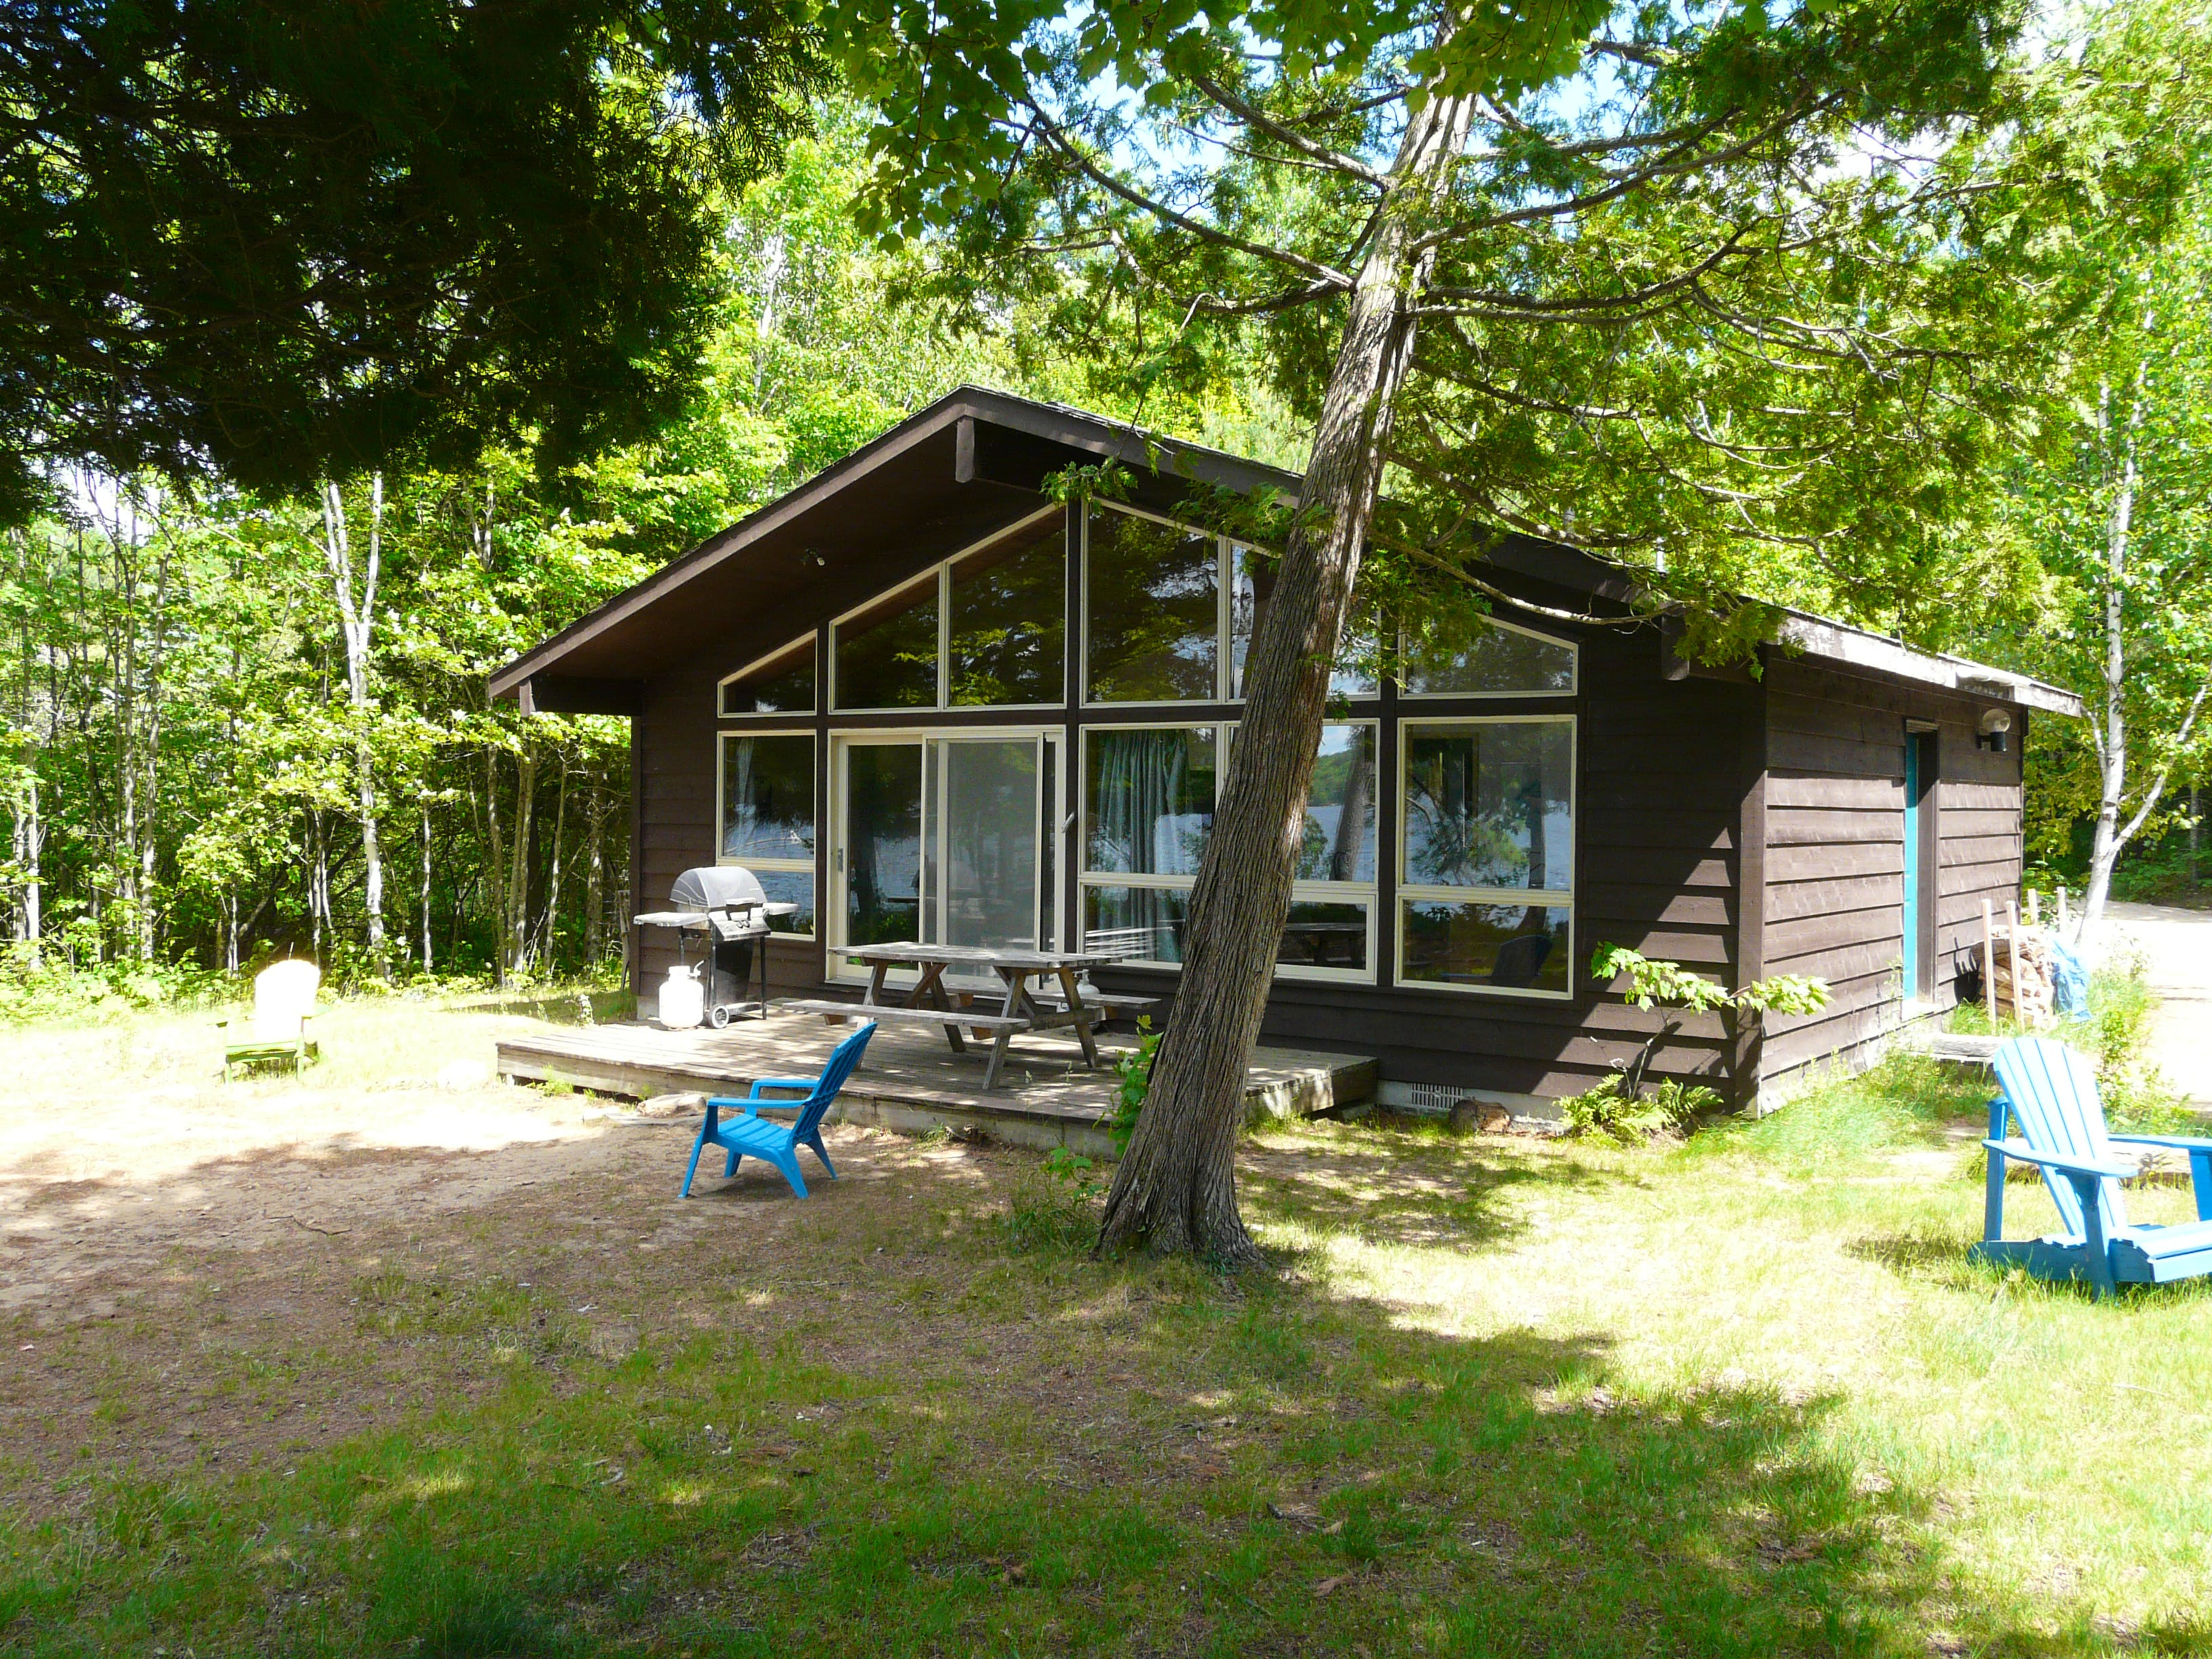 Family cottage rental accommodations nestled in the woods on lovely Walker Lake in Muskoka near Huntsville and Algonquin Park